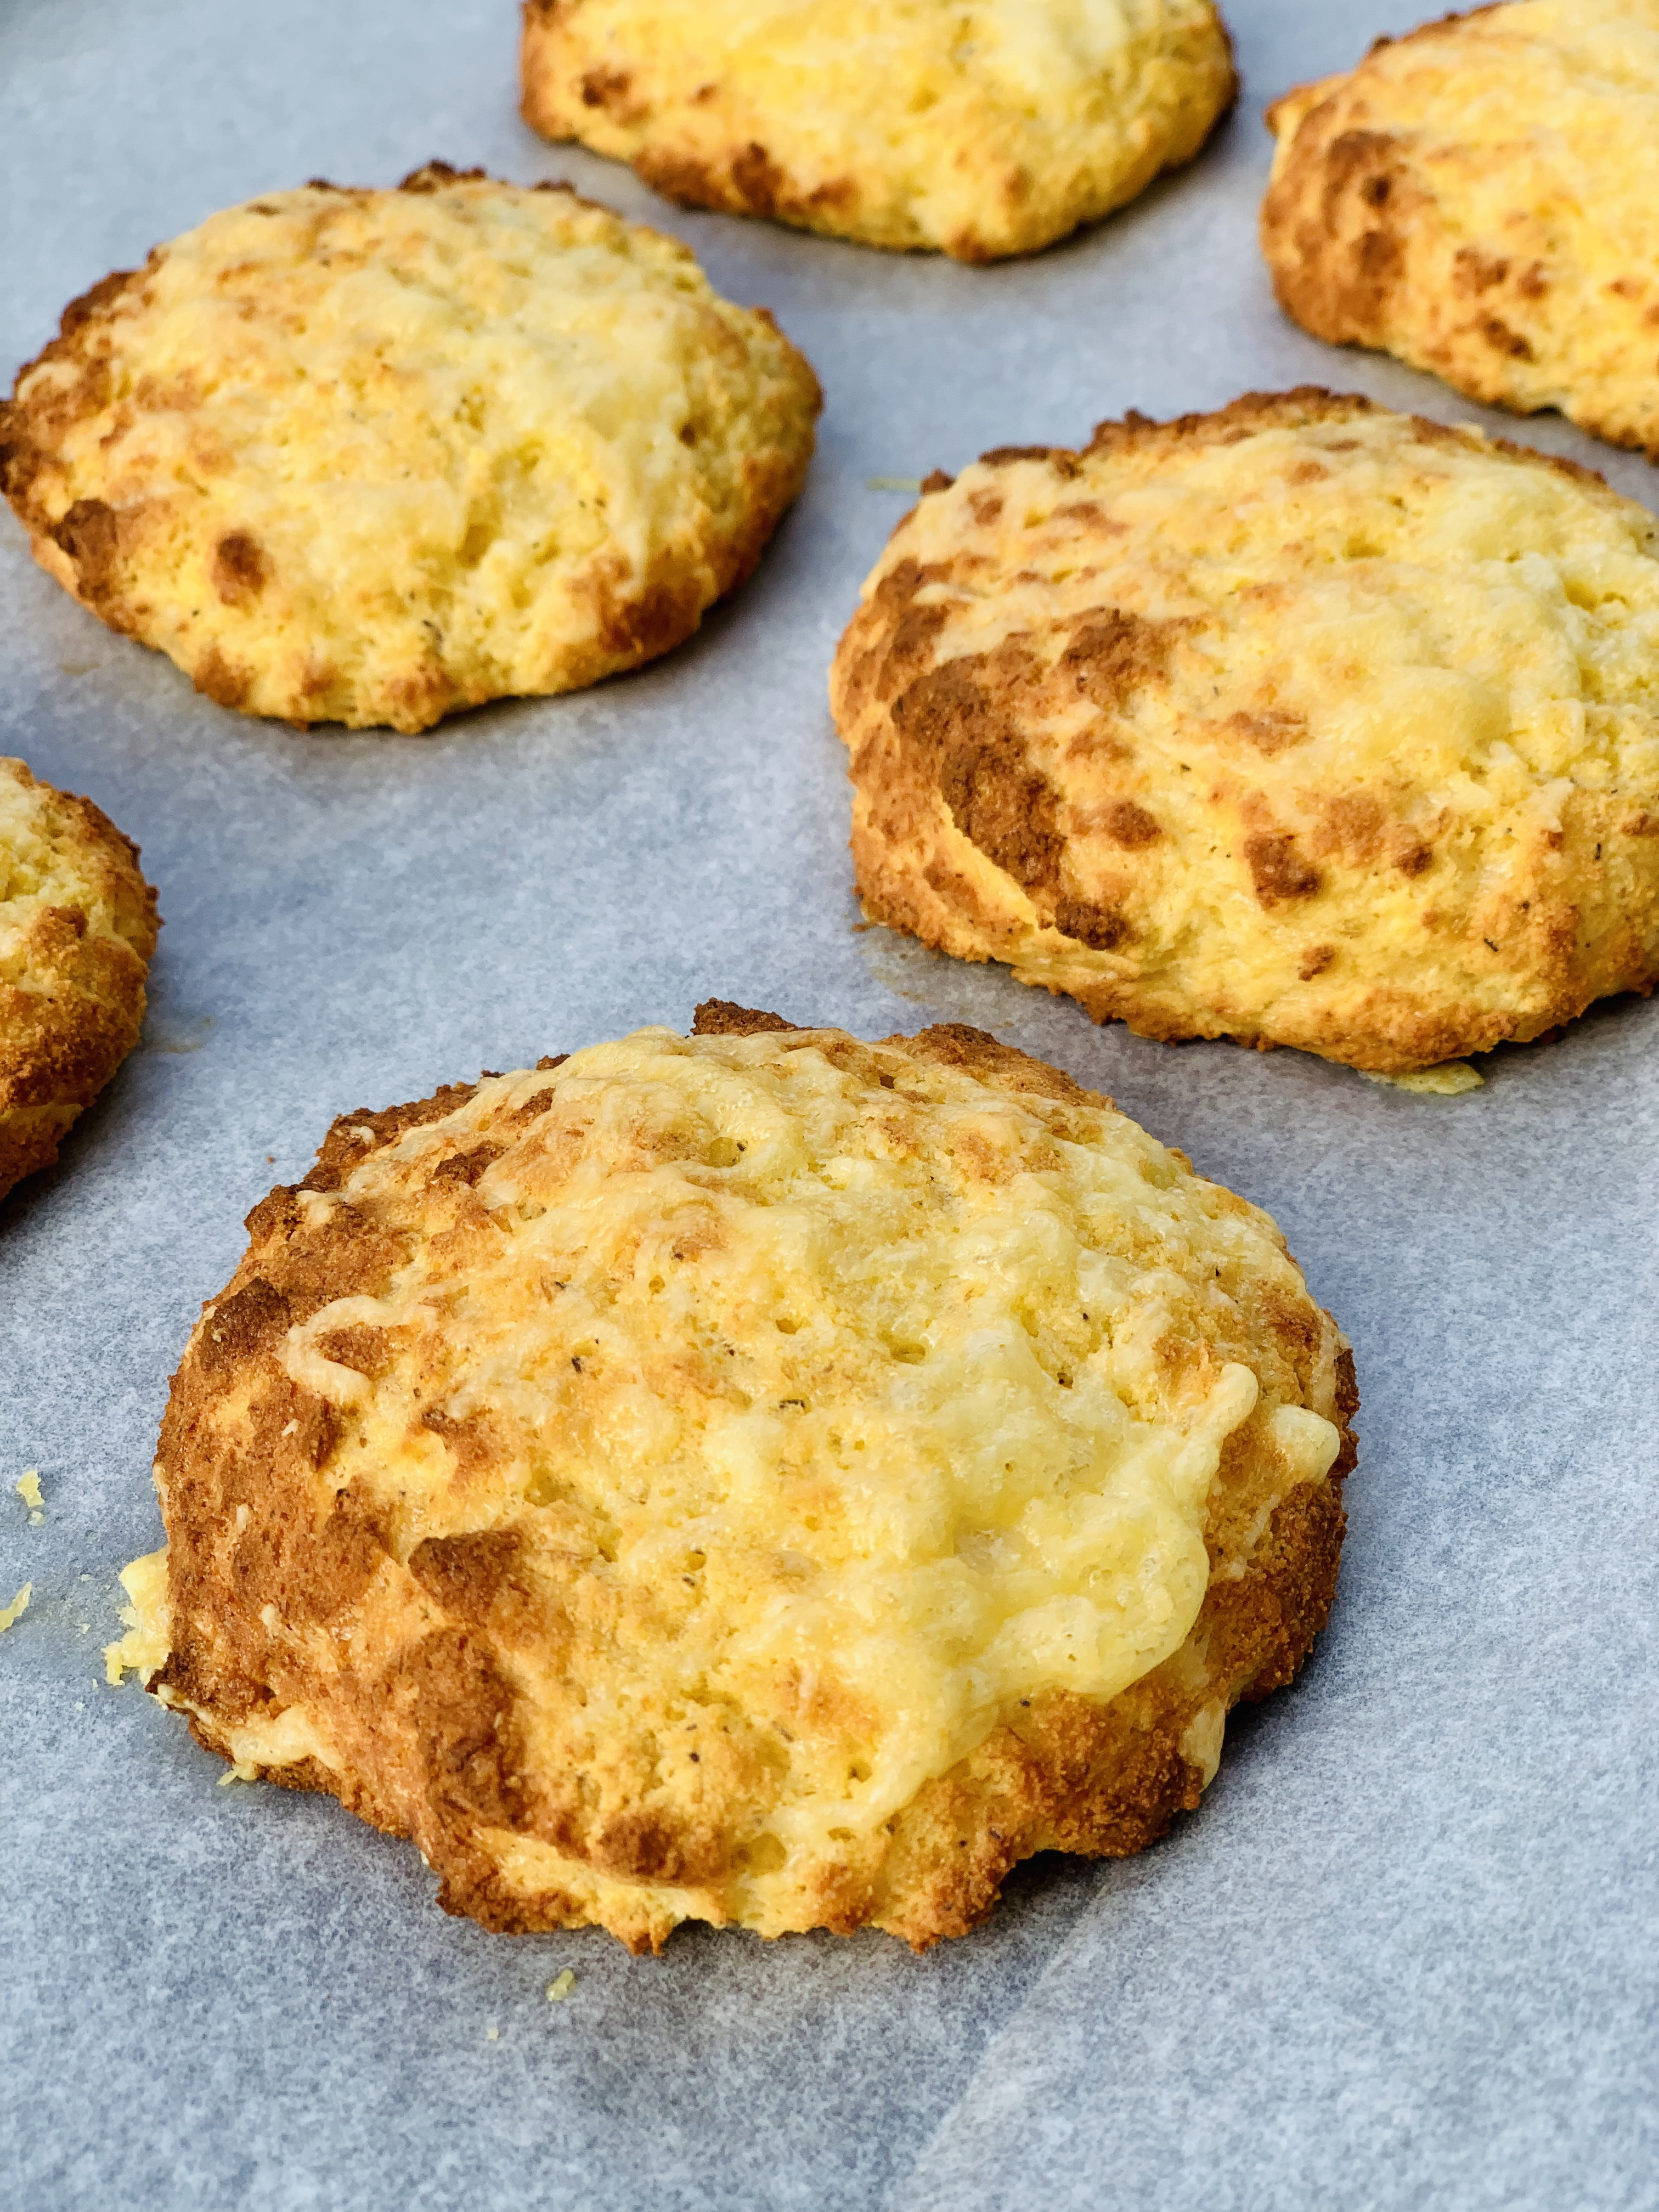 Picture of freshly baked keto cheddar biscuits